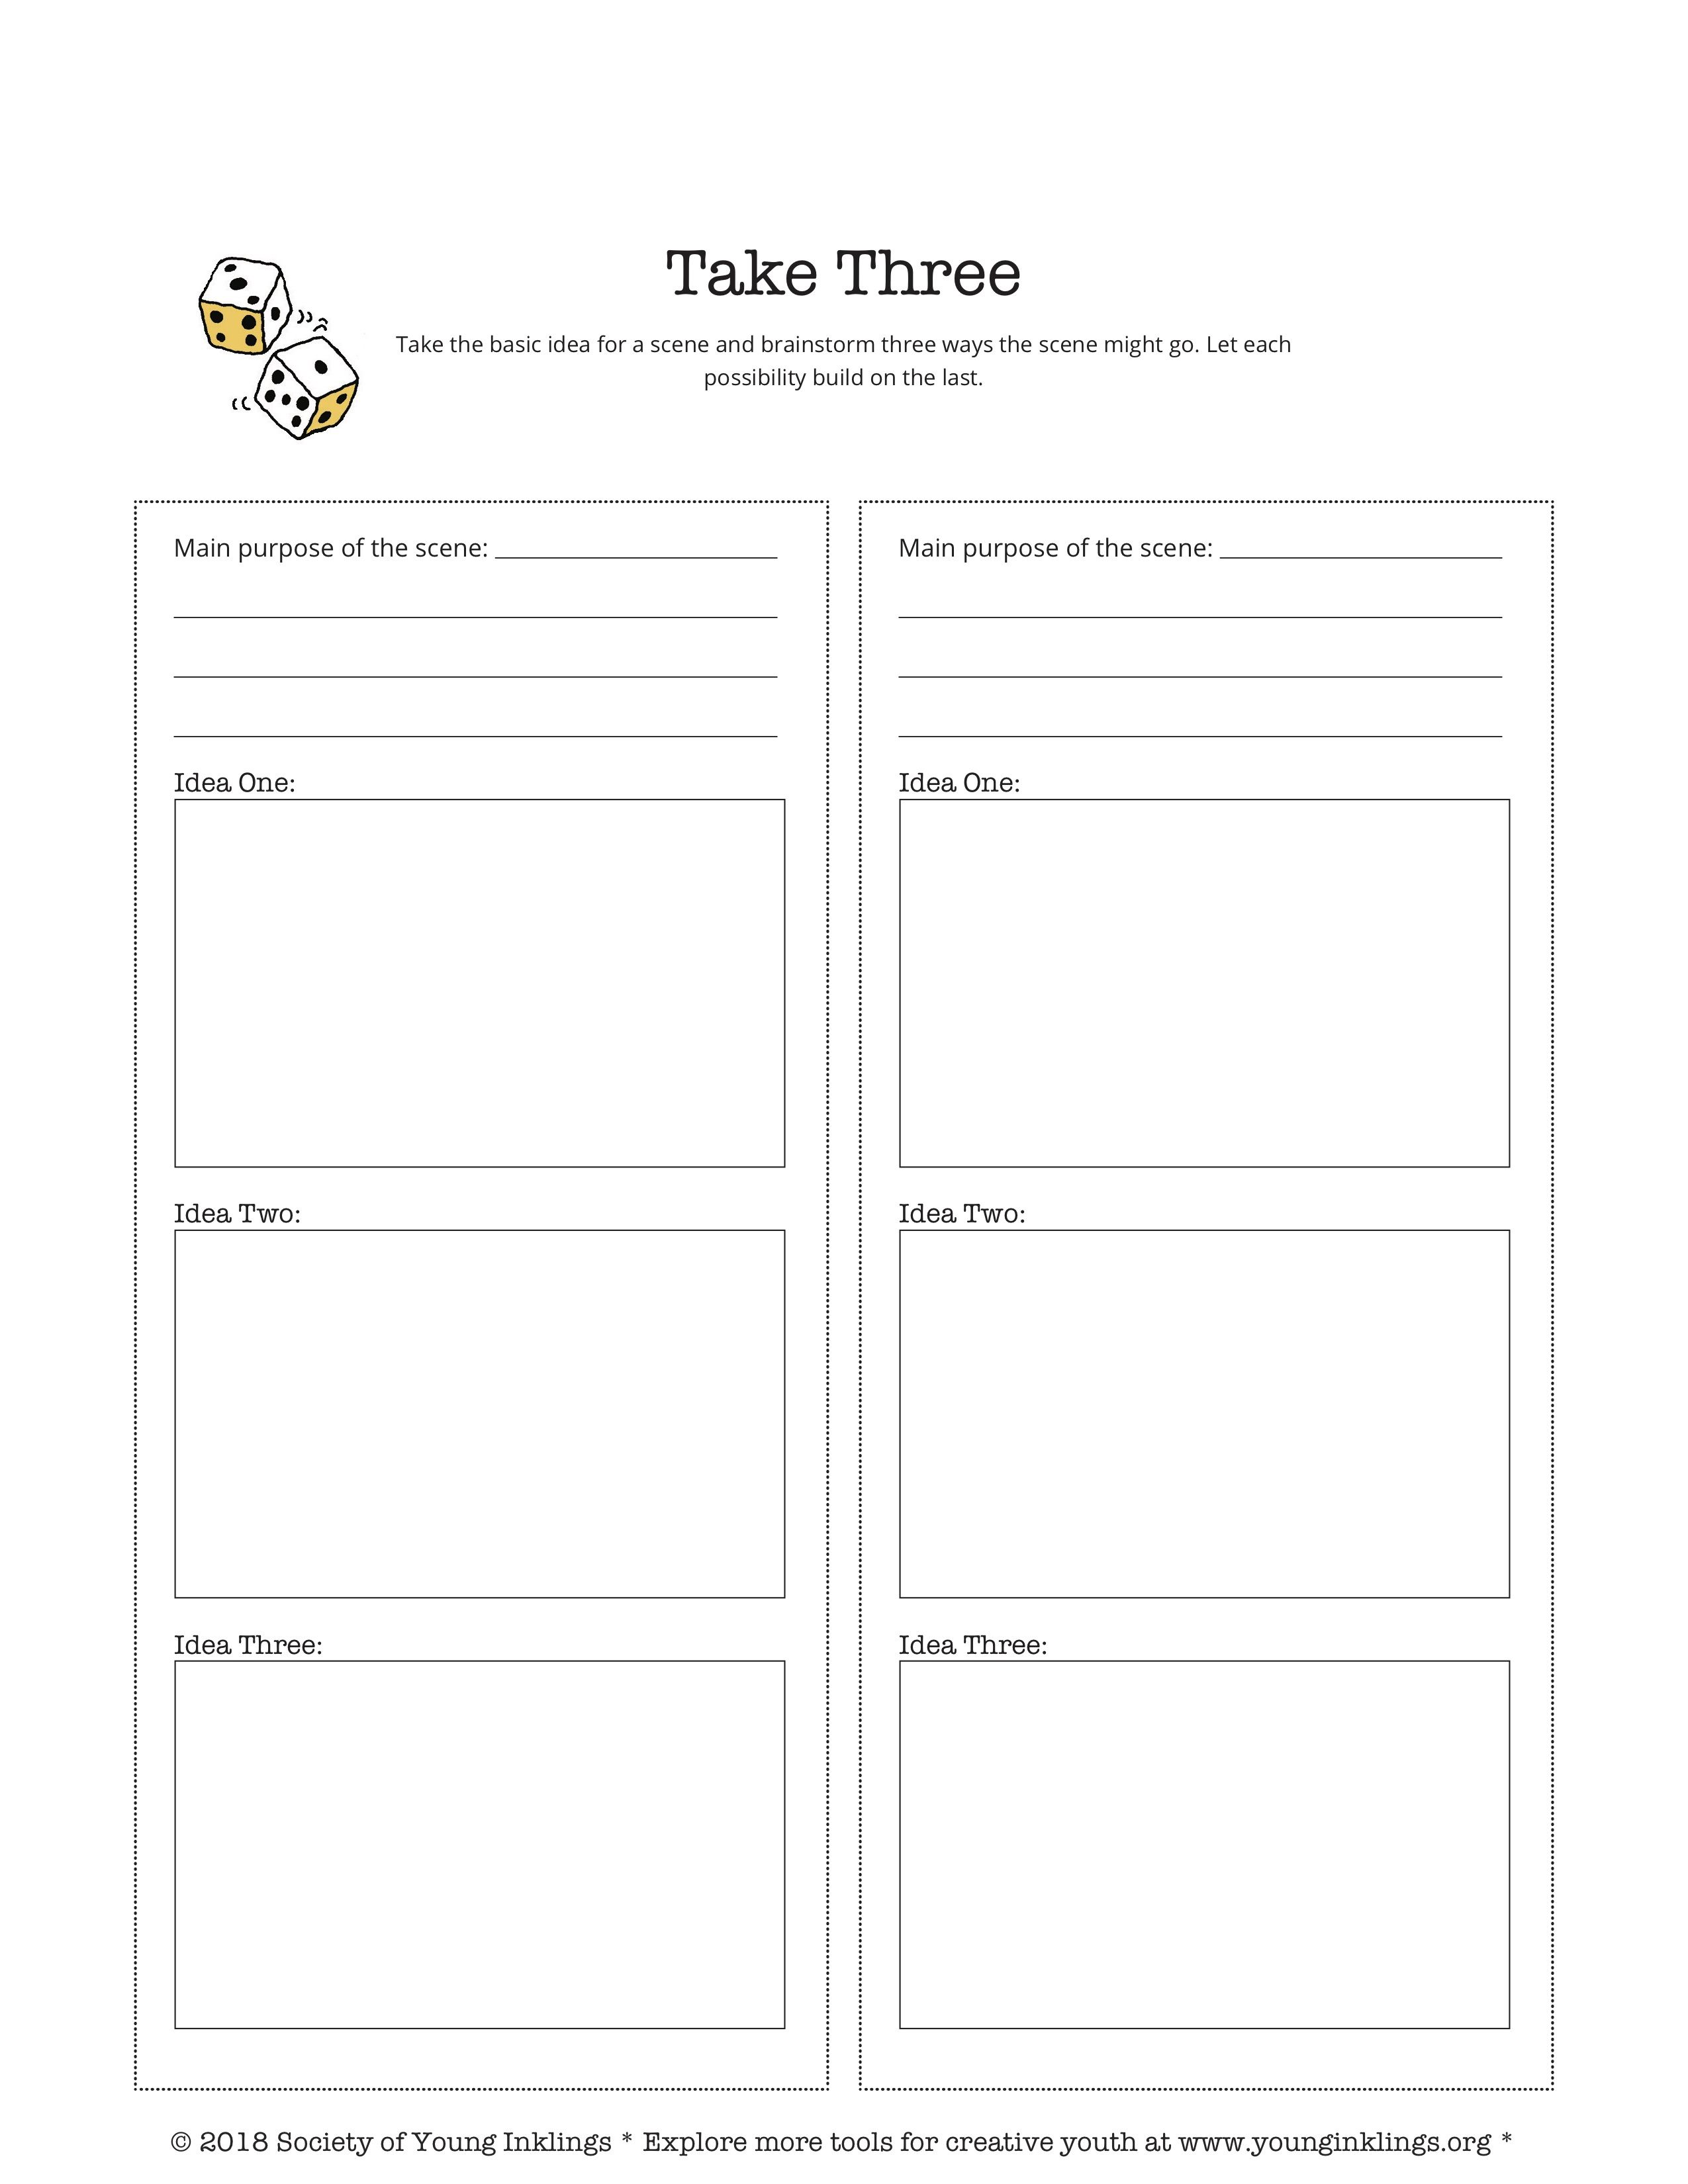 Brainstorming Mini Workshop With Free Printable With Images